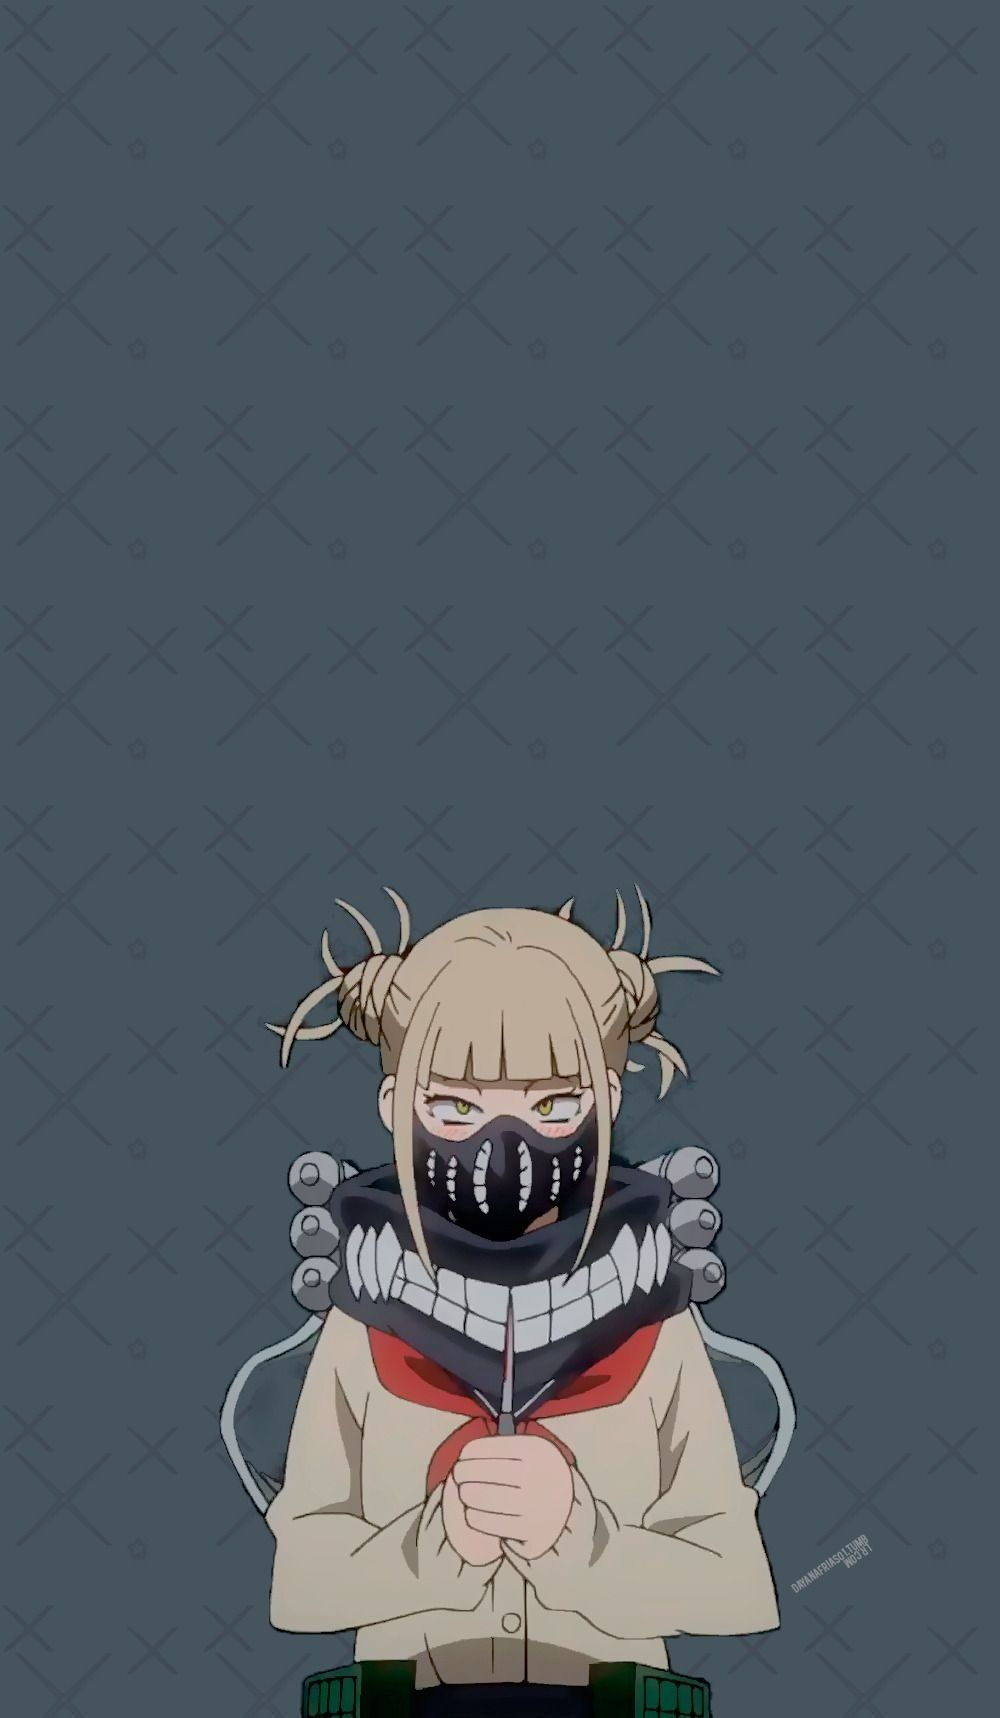 💕Aesthetic Wallpapers💕 (discontinued:[ ) - 🔪Toga Himiko🔪